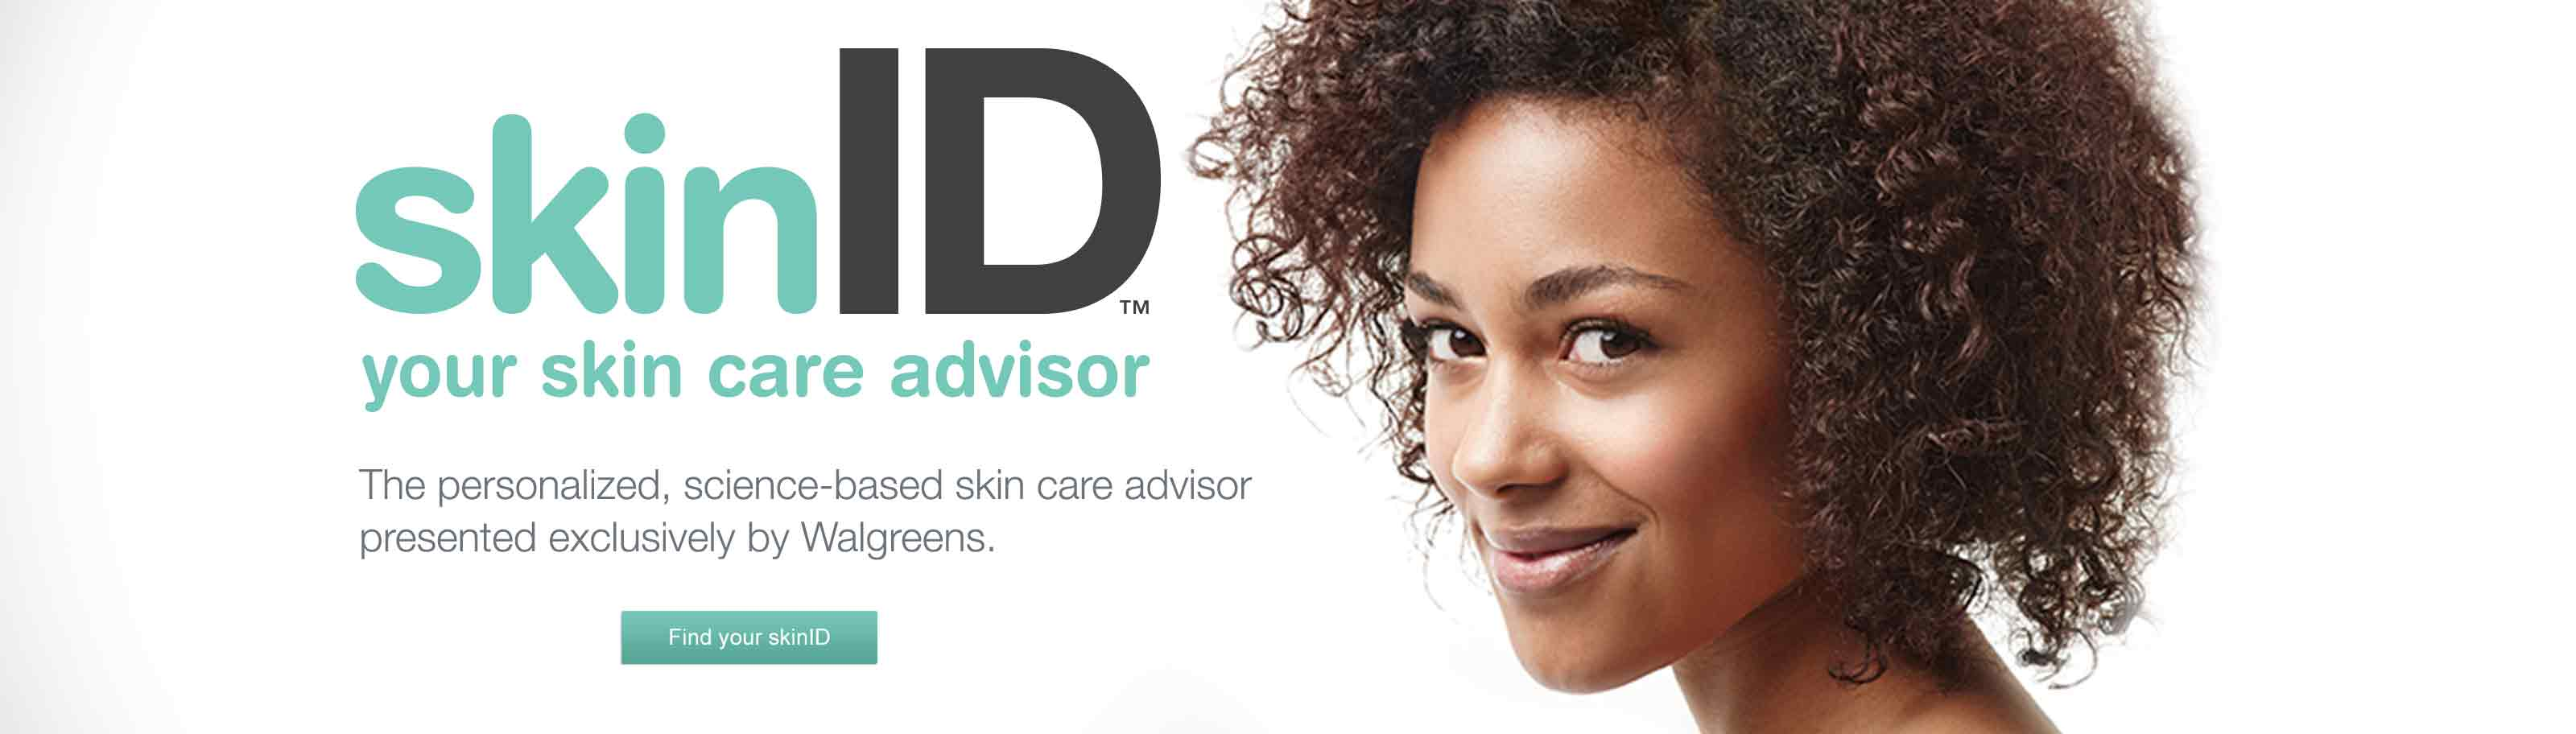 skinID(TM) your skin care advisor. The personalized, science-based skin care advisor presented exclusively by Walgreens. Find your skinID.